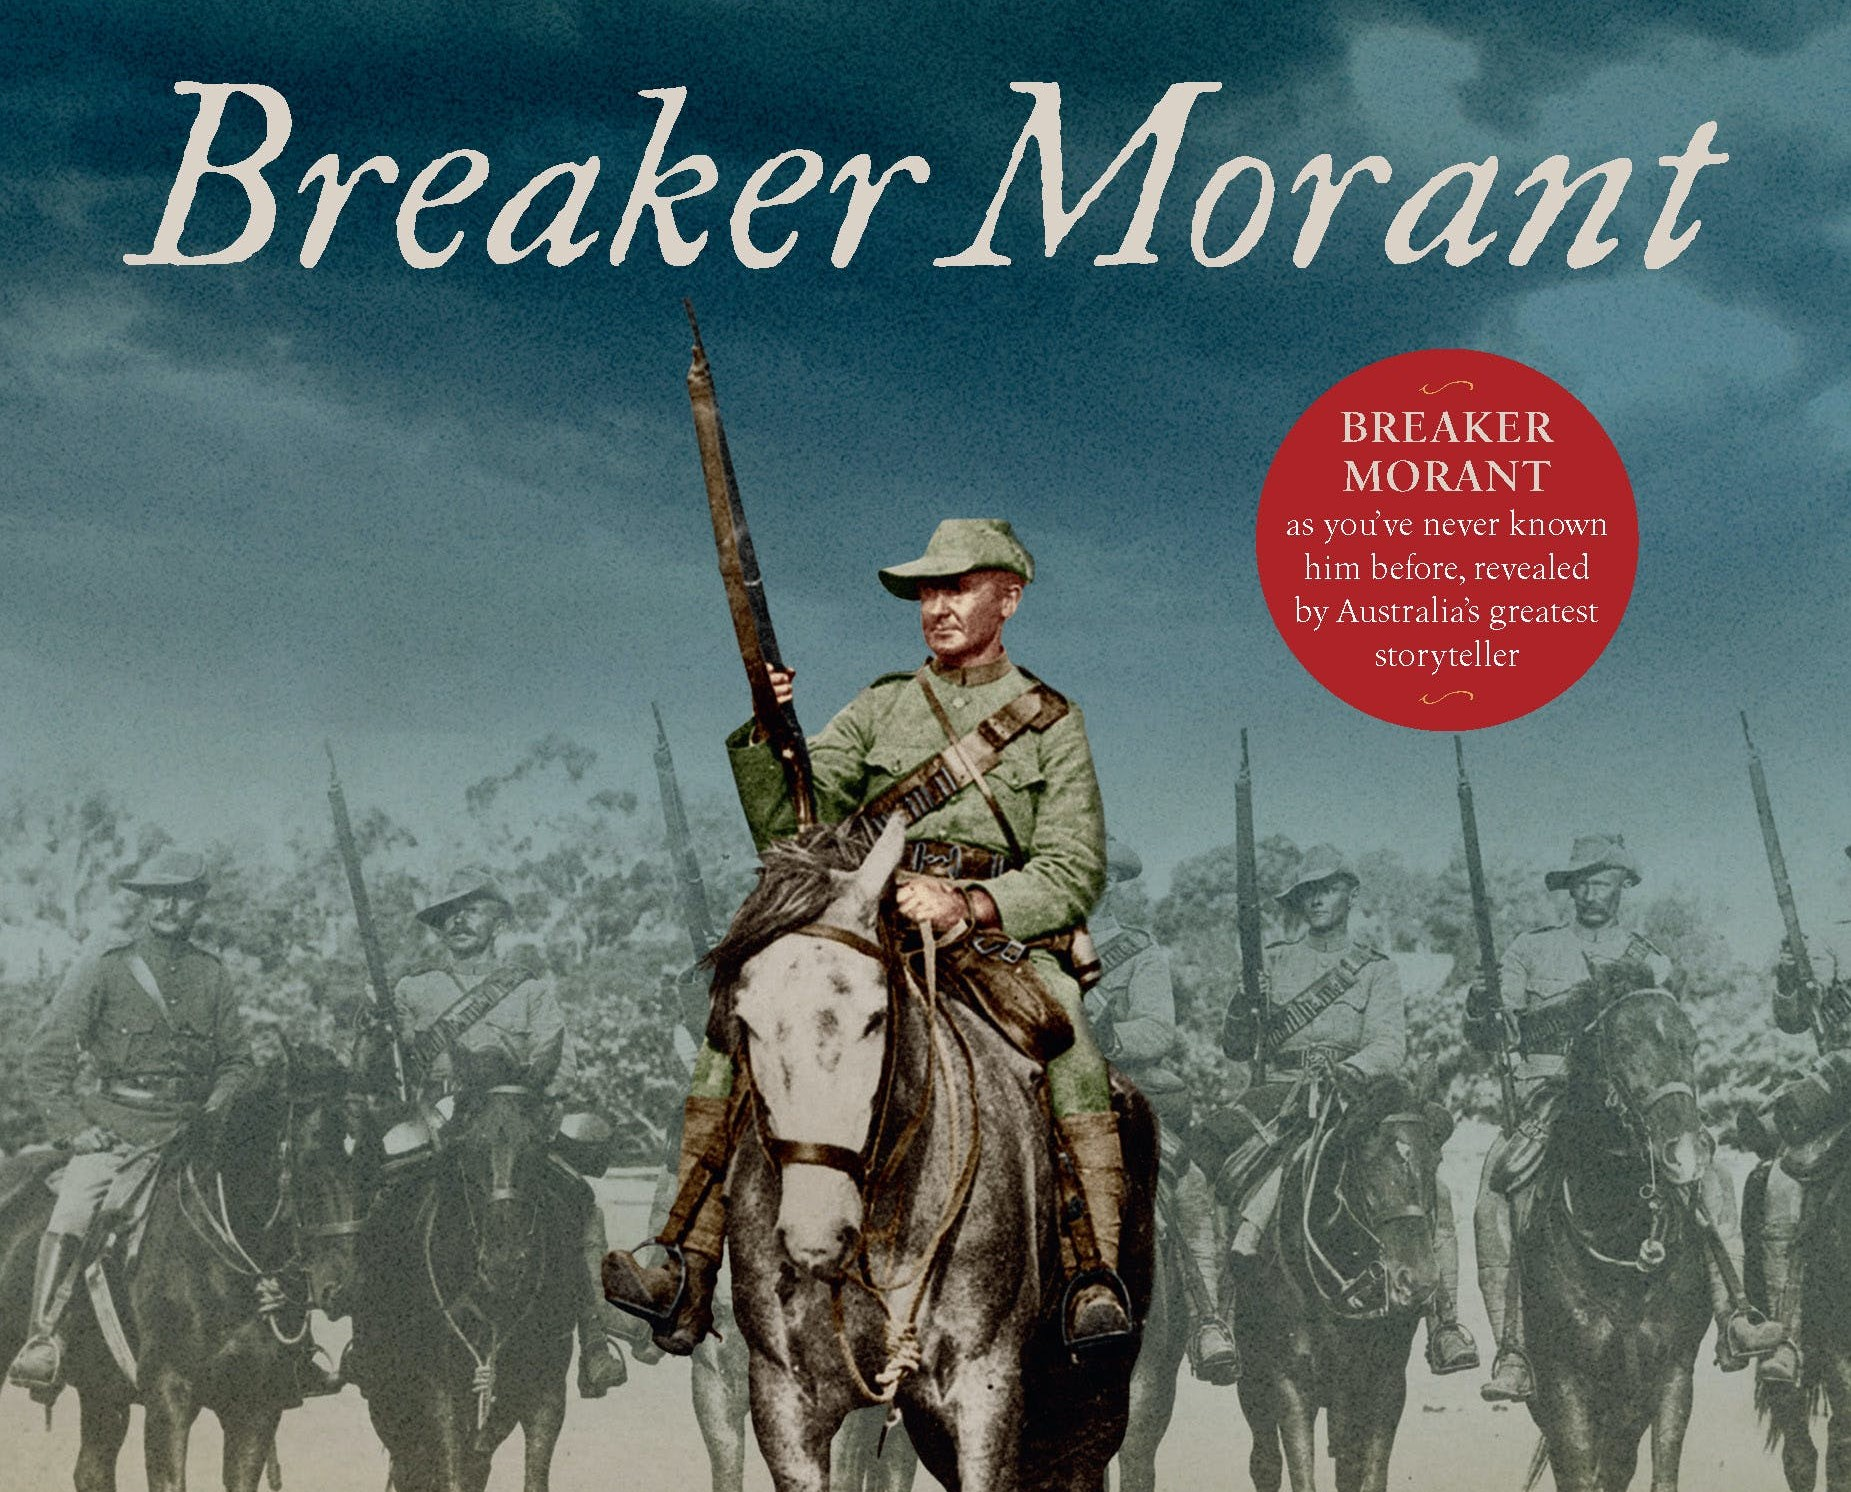 Breaking the myth of Breaker Morant with Peter FitzSimons